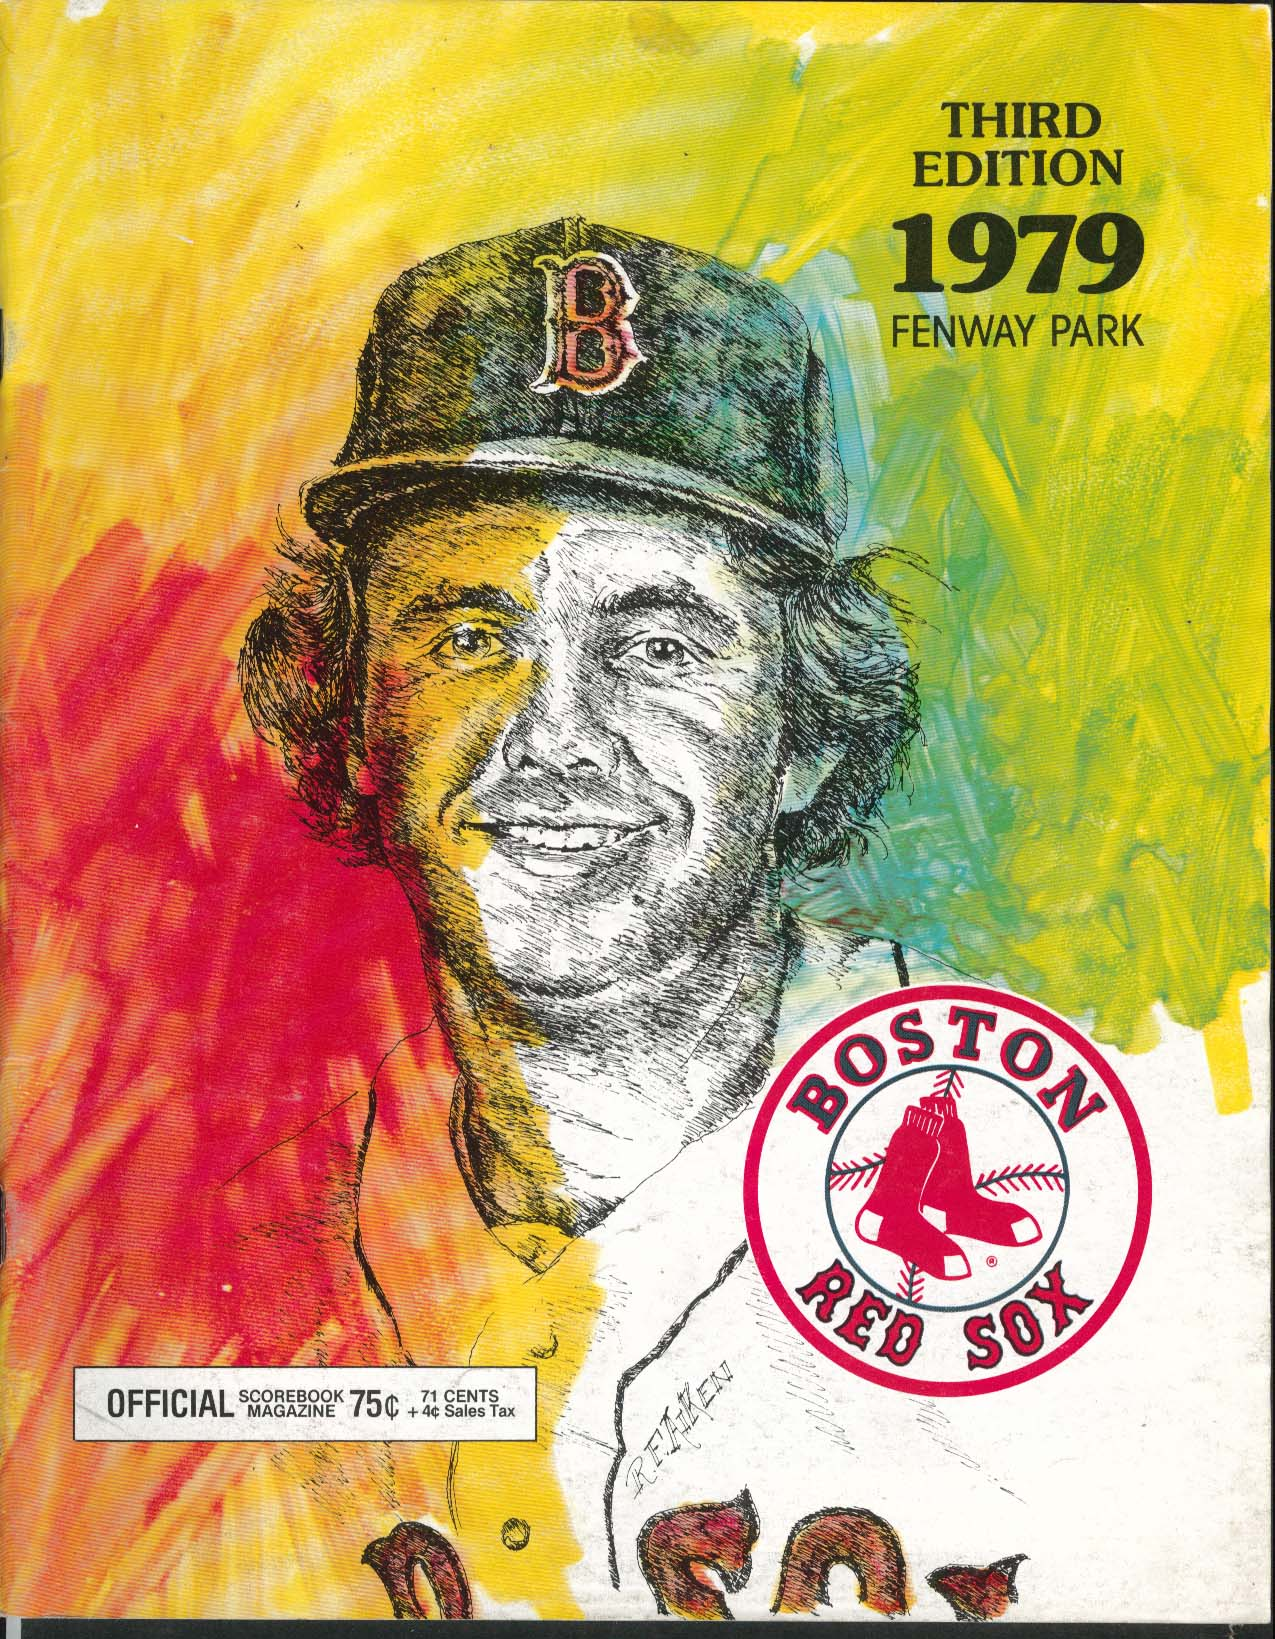 Boston Red Sox Official Scorebook Third Edition 1979 Fenway Park